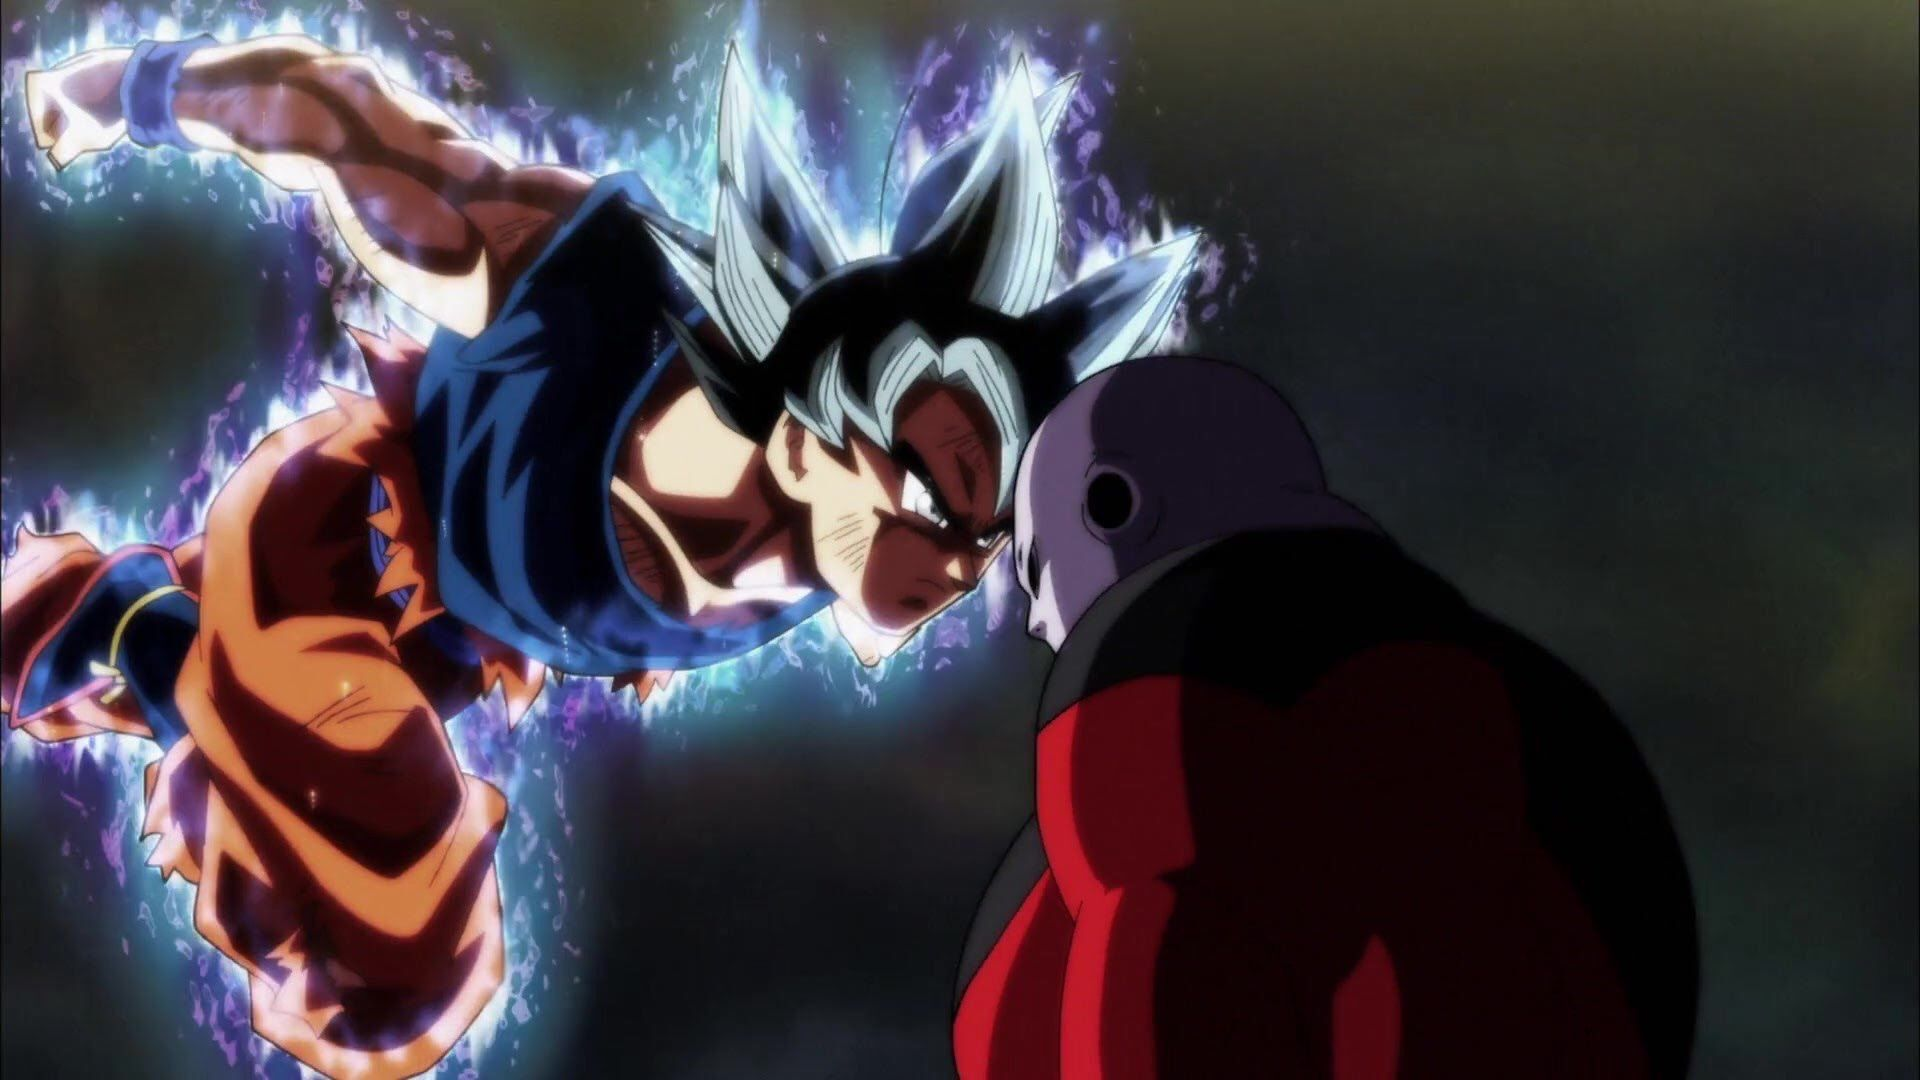 Goku Limit Breaker Ultra Instinct Vs Jiren Dragon Ball Super